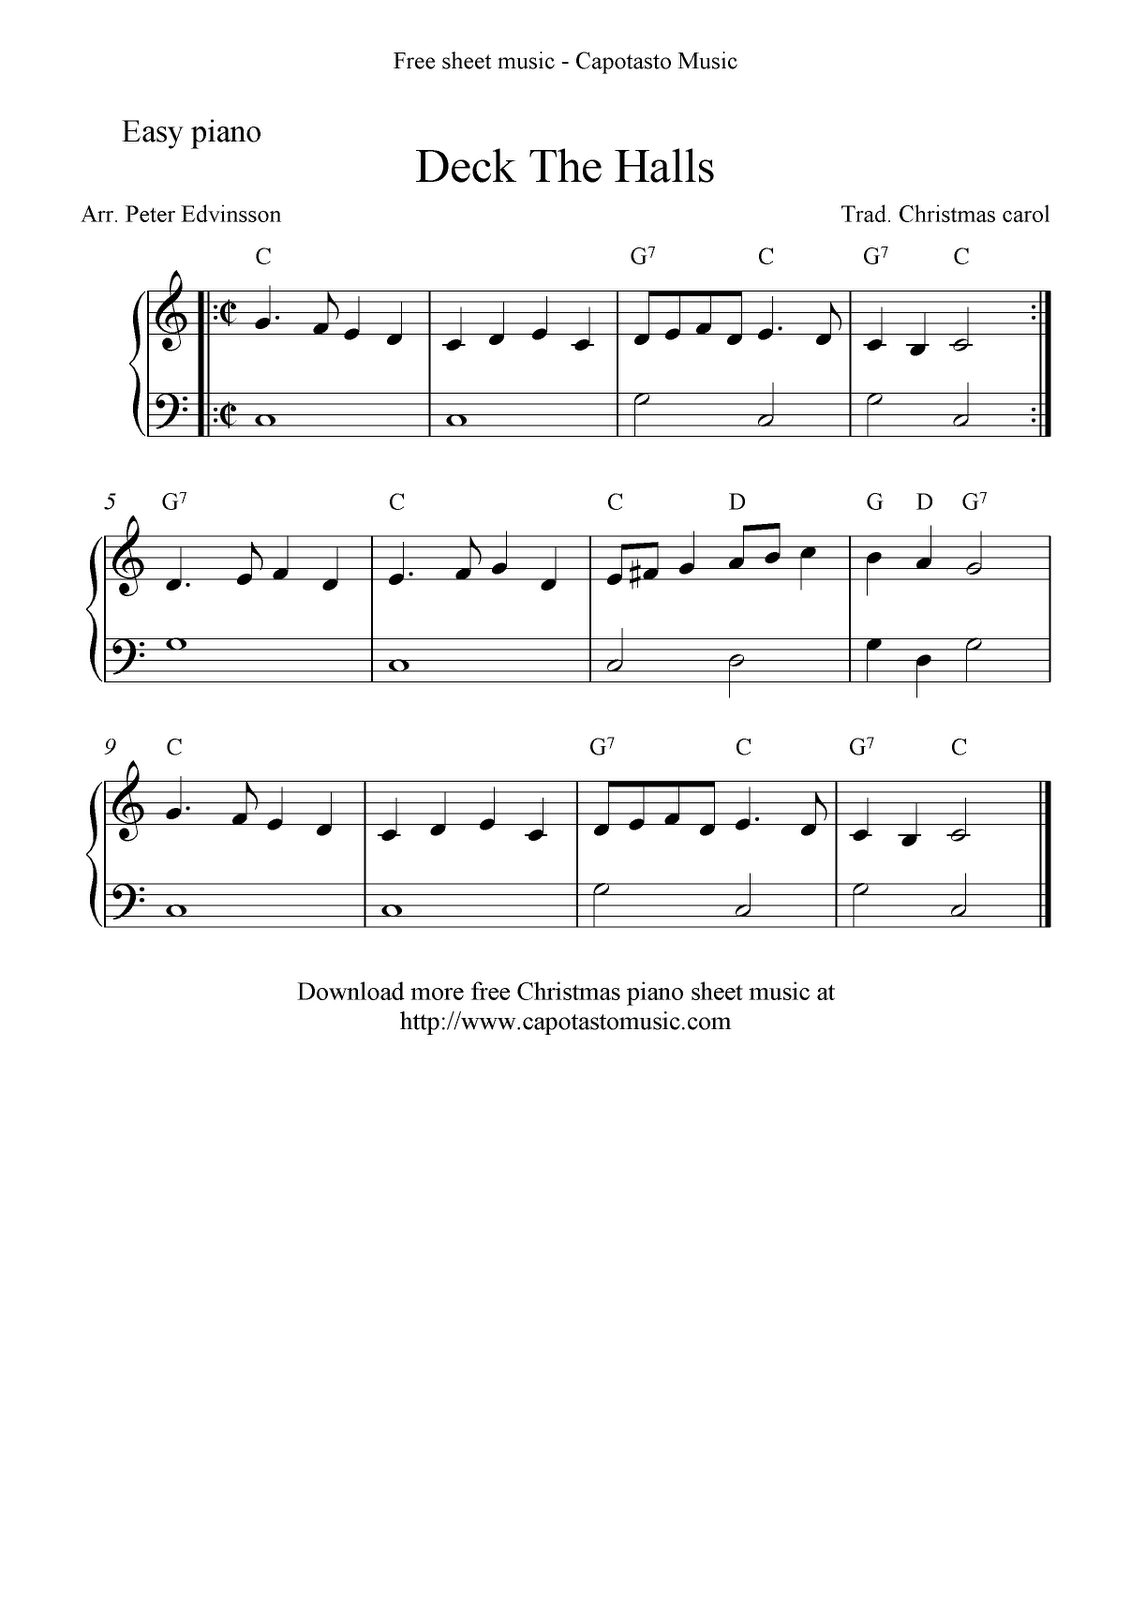 Deck the halls sheet music easy